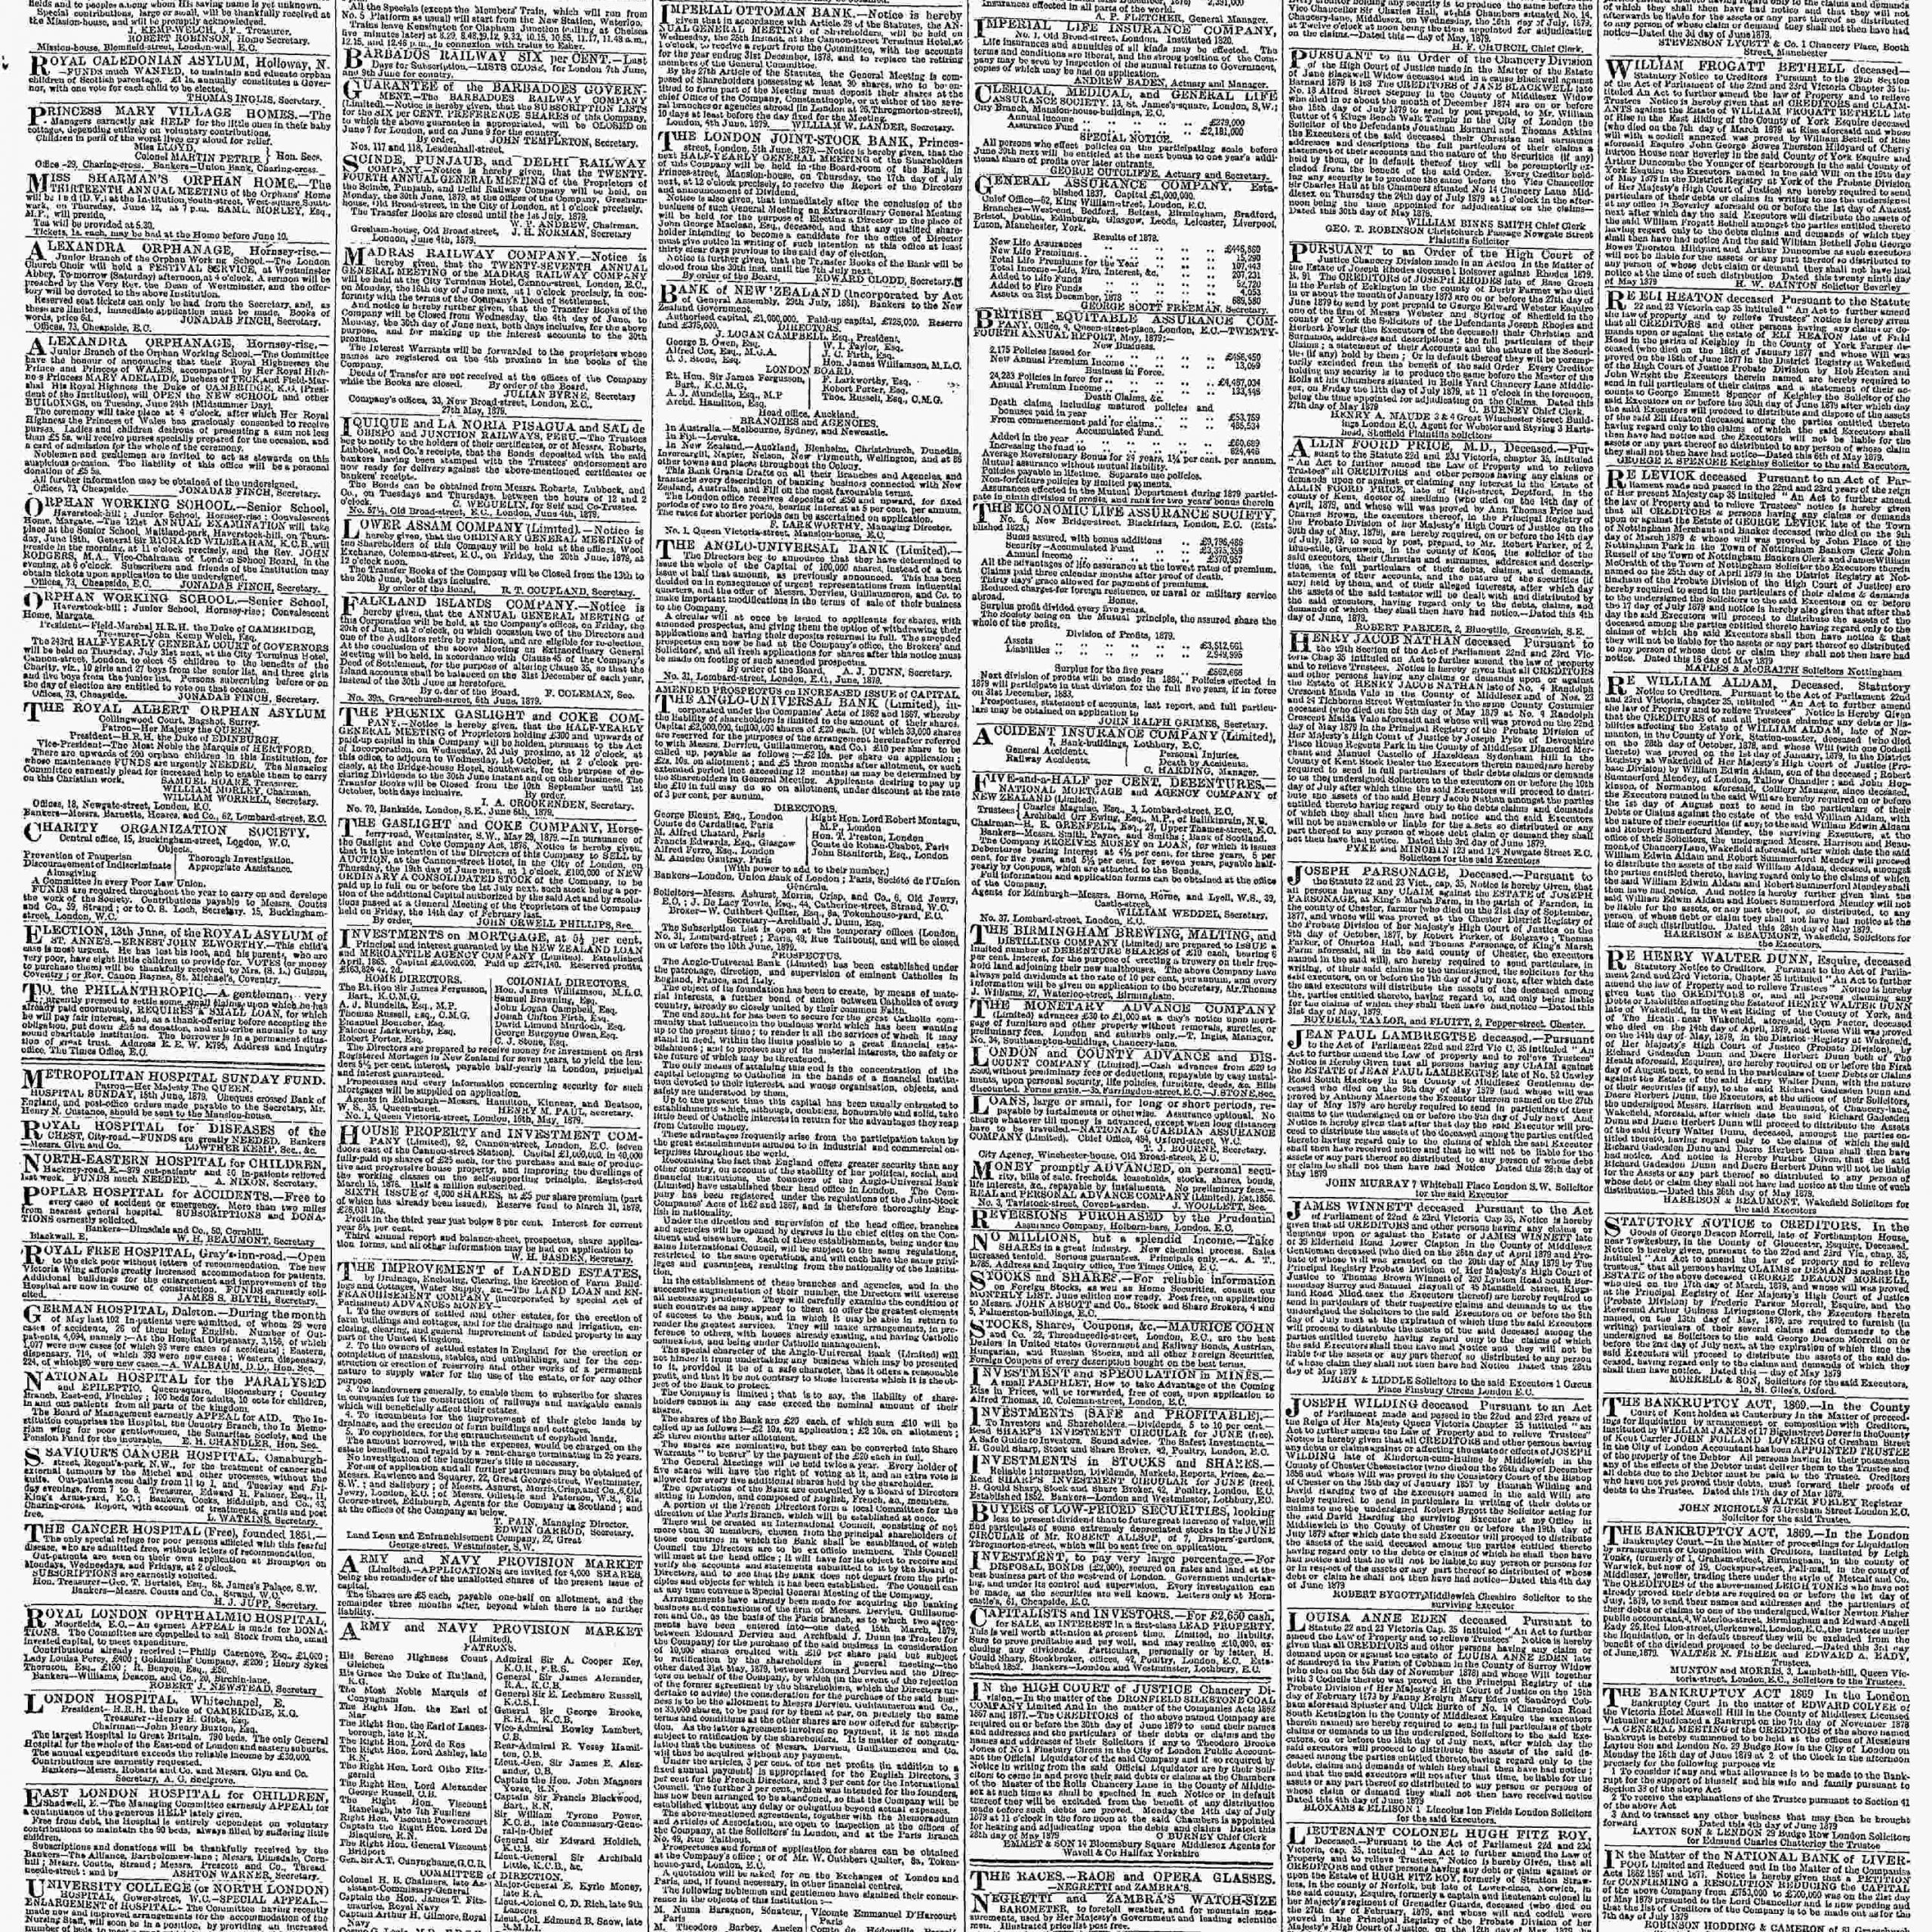 Used Cars for Sale 08080 Unique Archive Page Viewer June 6 1879